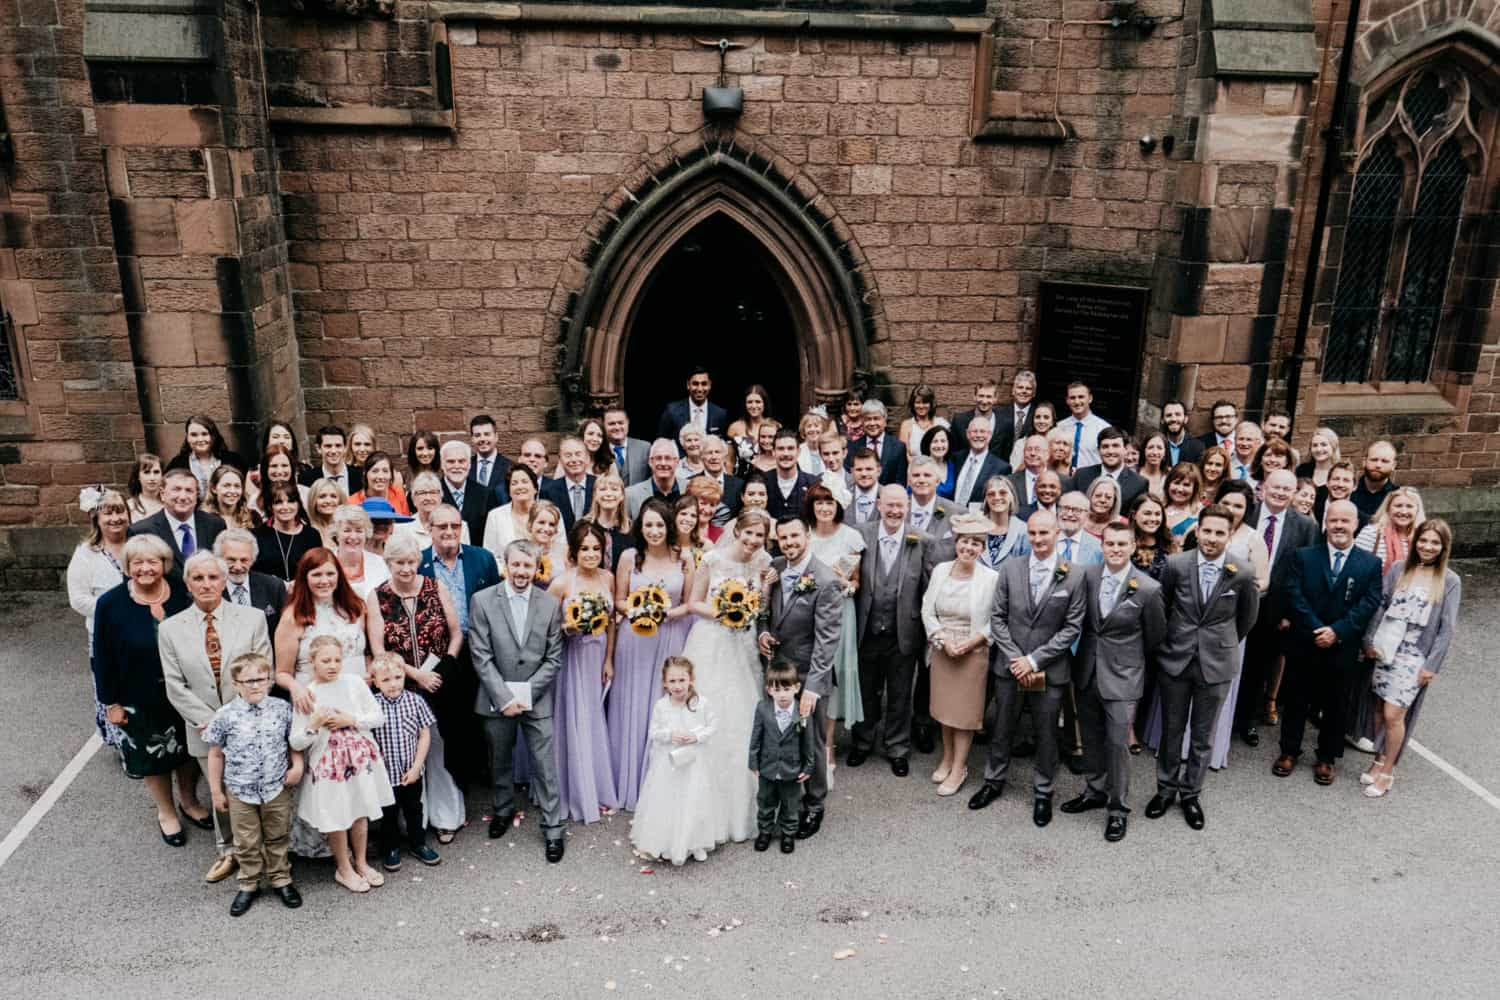 all the wedding guests